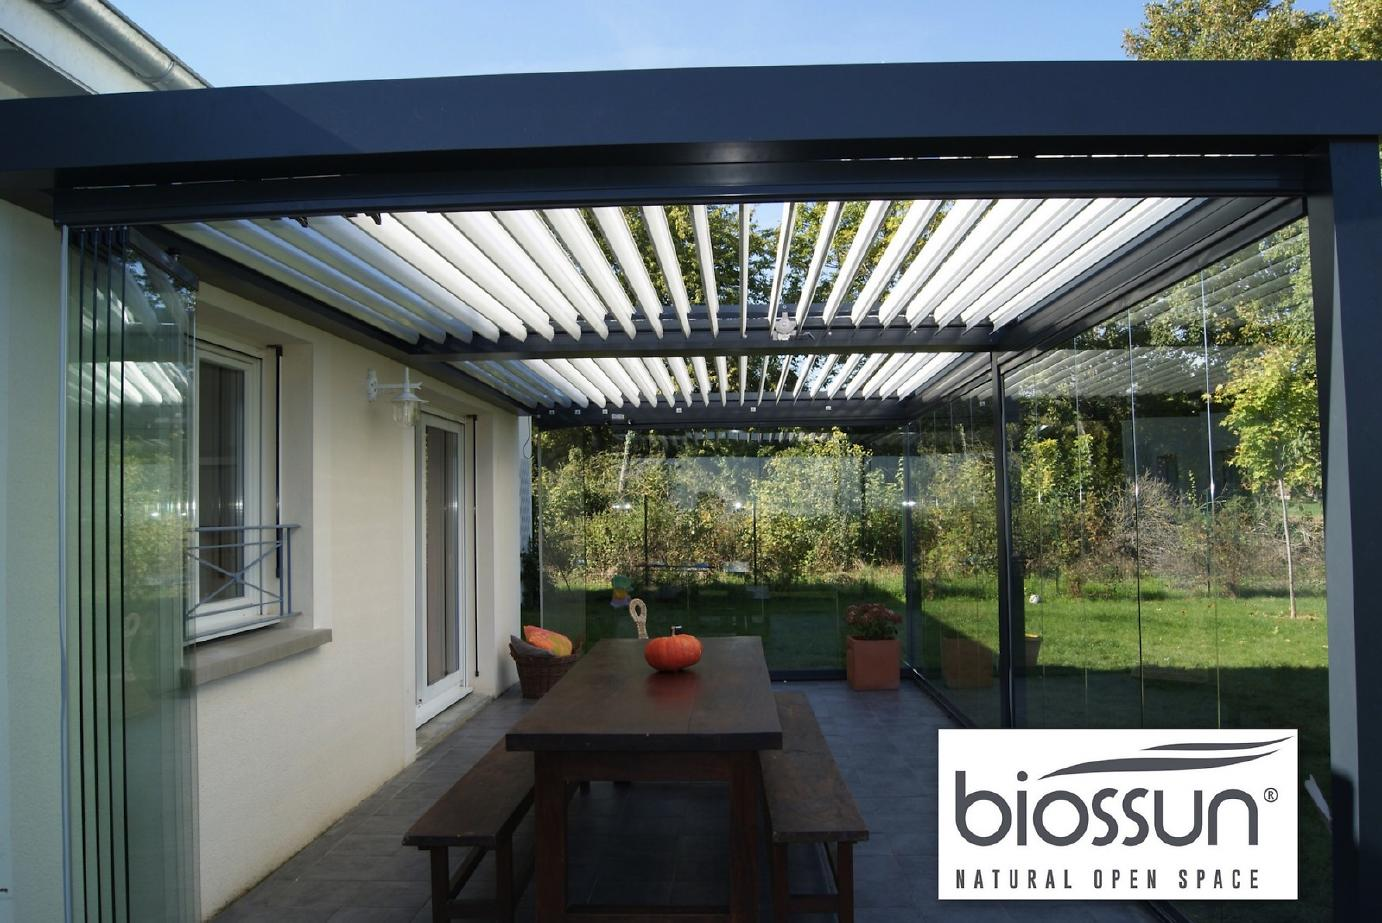 pergola bioclimatique biossun la pergola lames orientables sur mesure pergola bioclimatique. Black Bedroom Furniture Sets. Home Design Ideas